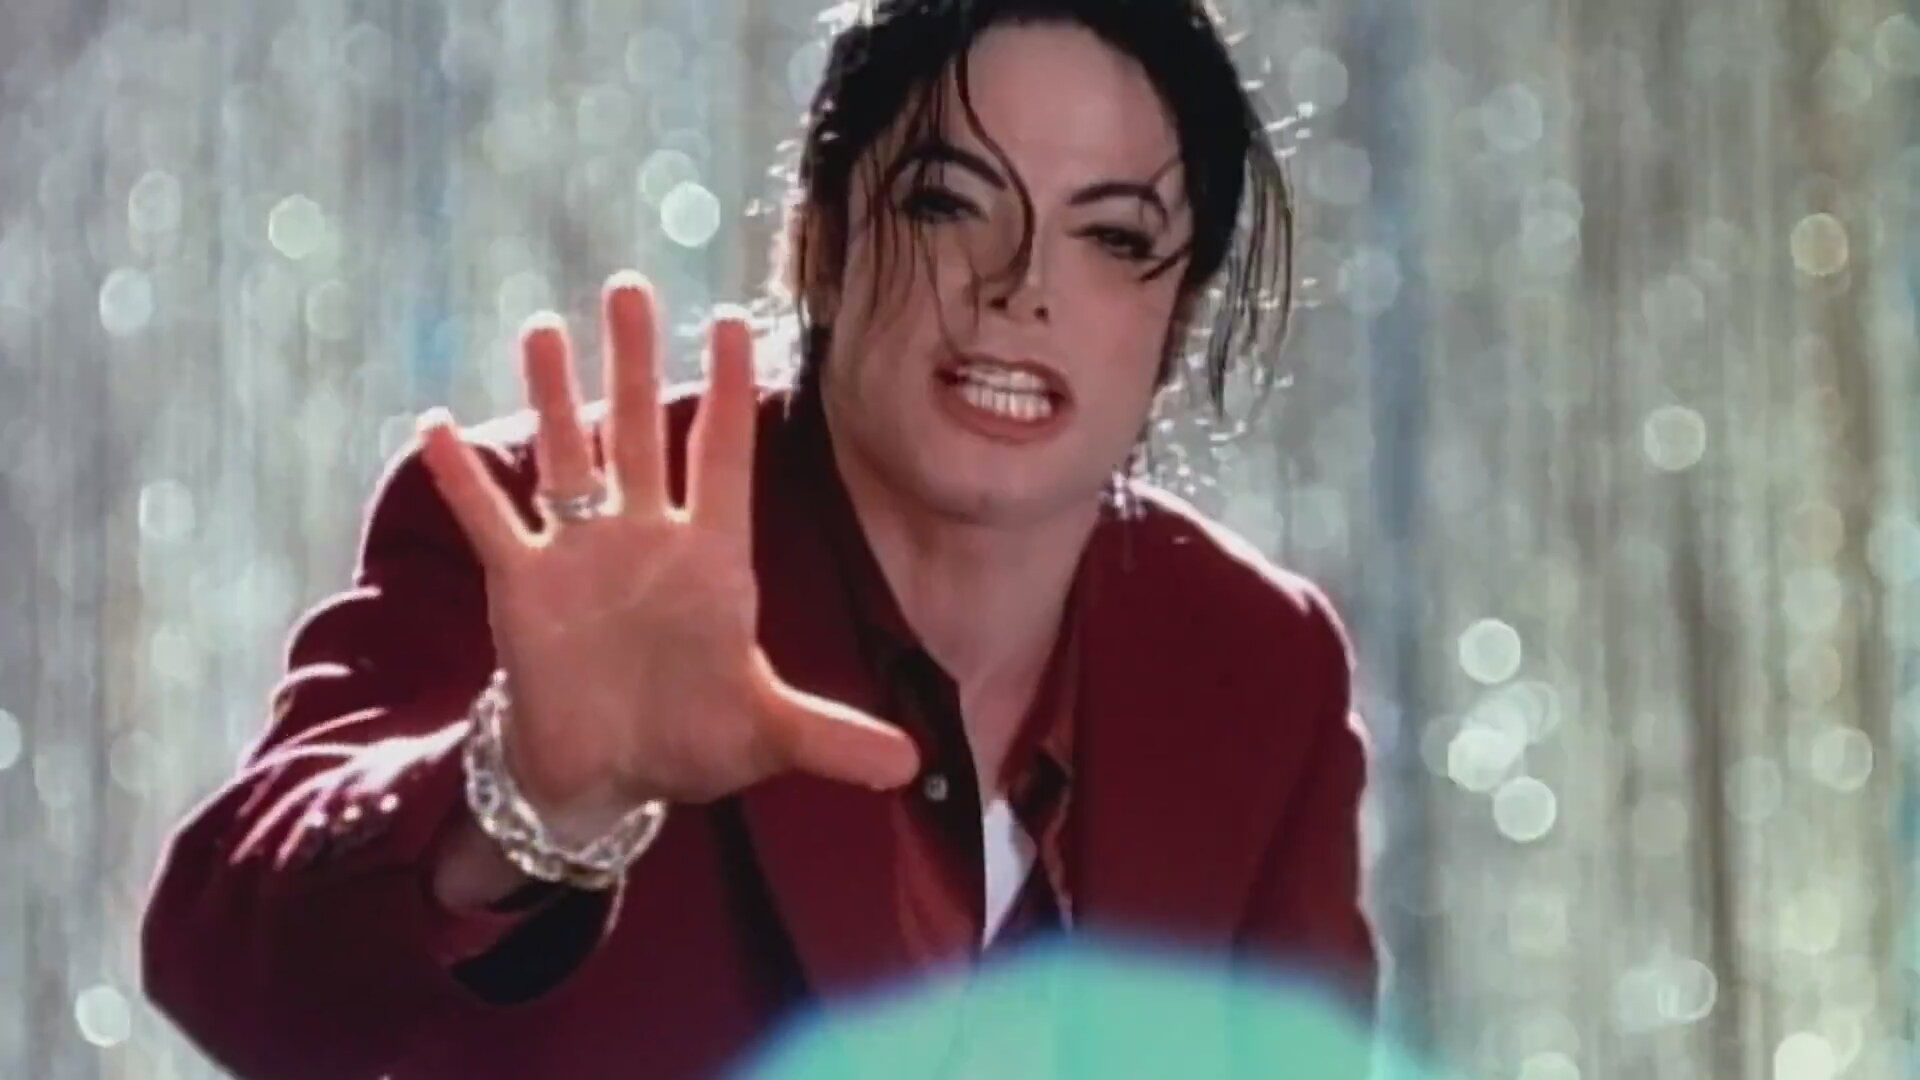 Michael Jackson Hd Wallpapers For Iphone 6 Botdf Wallpaper 66 Images